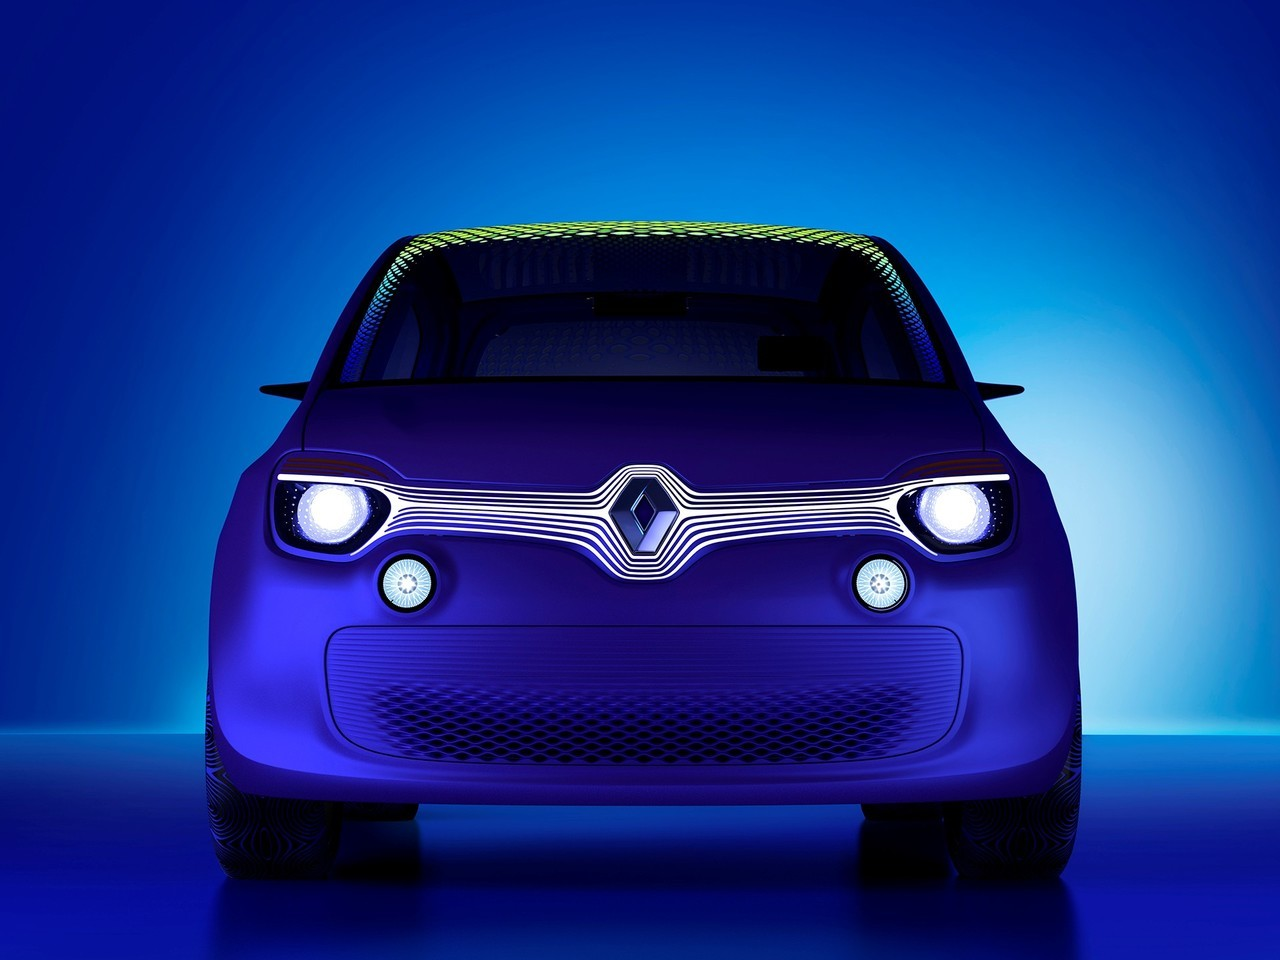 Renault Twin Z concept-car